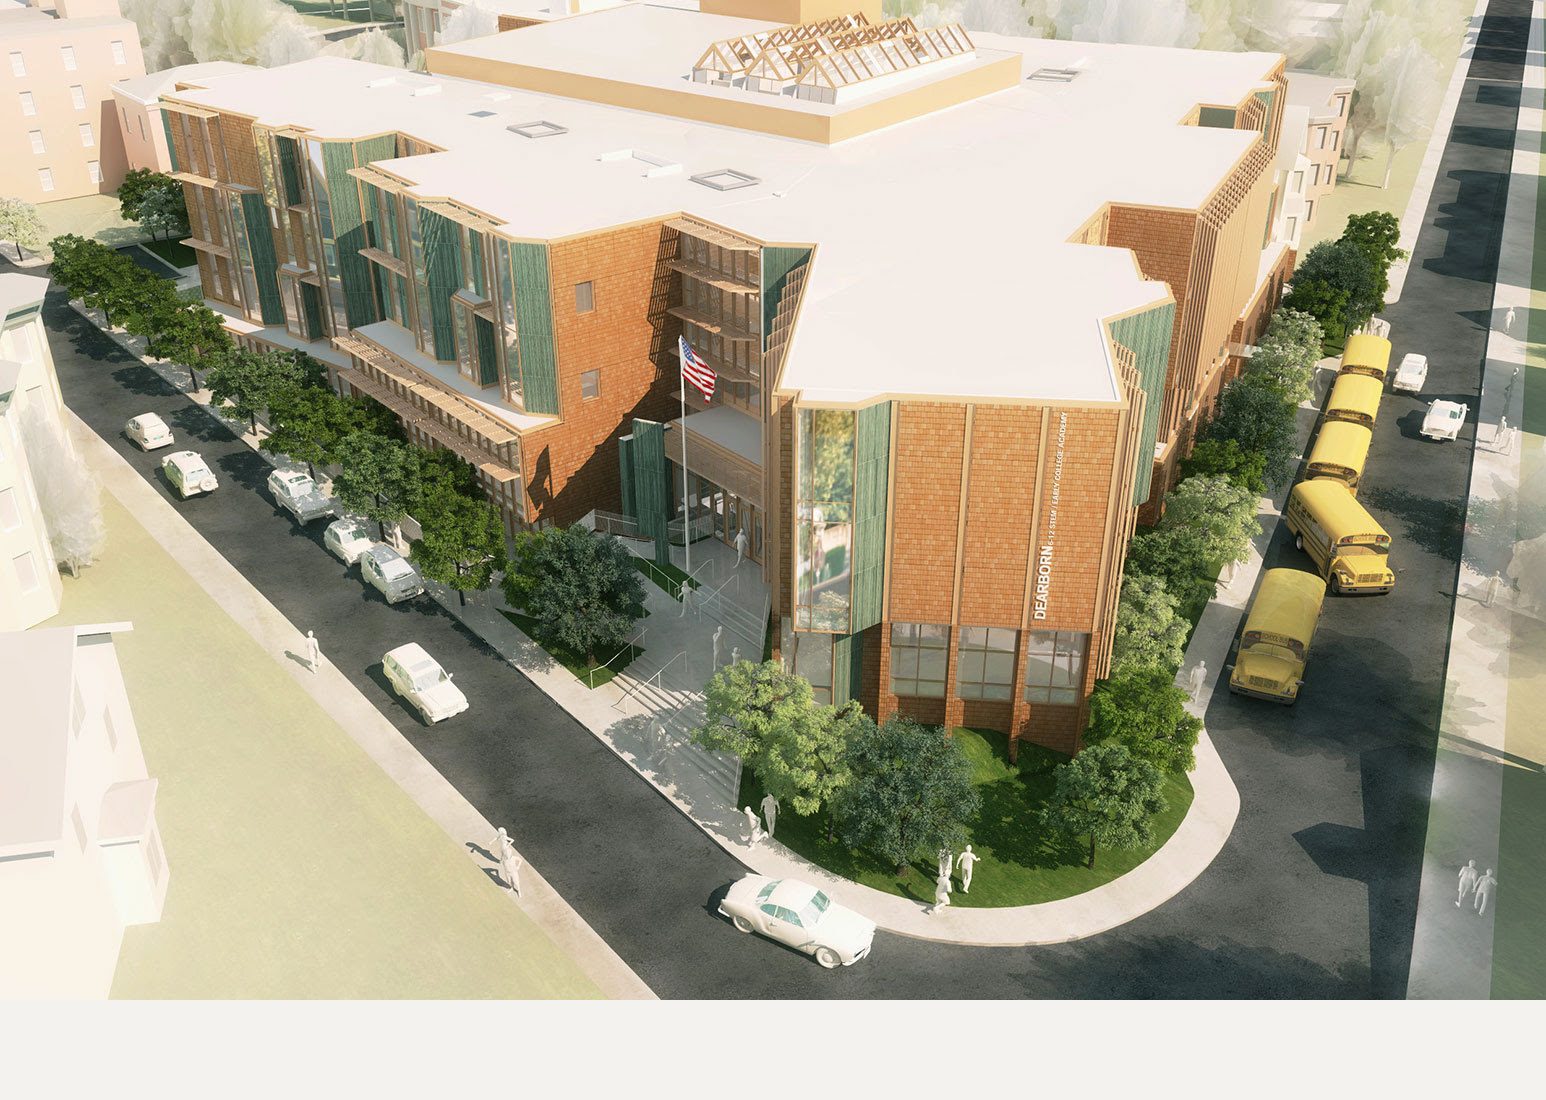 Design for the new Dearborn STEM Academy